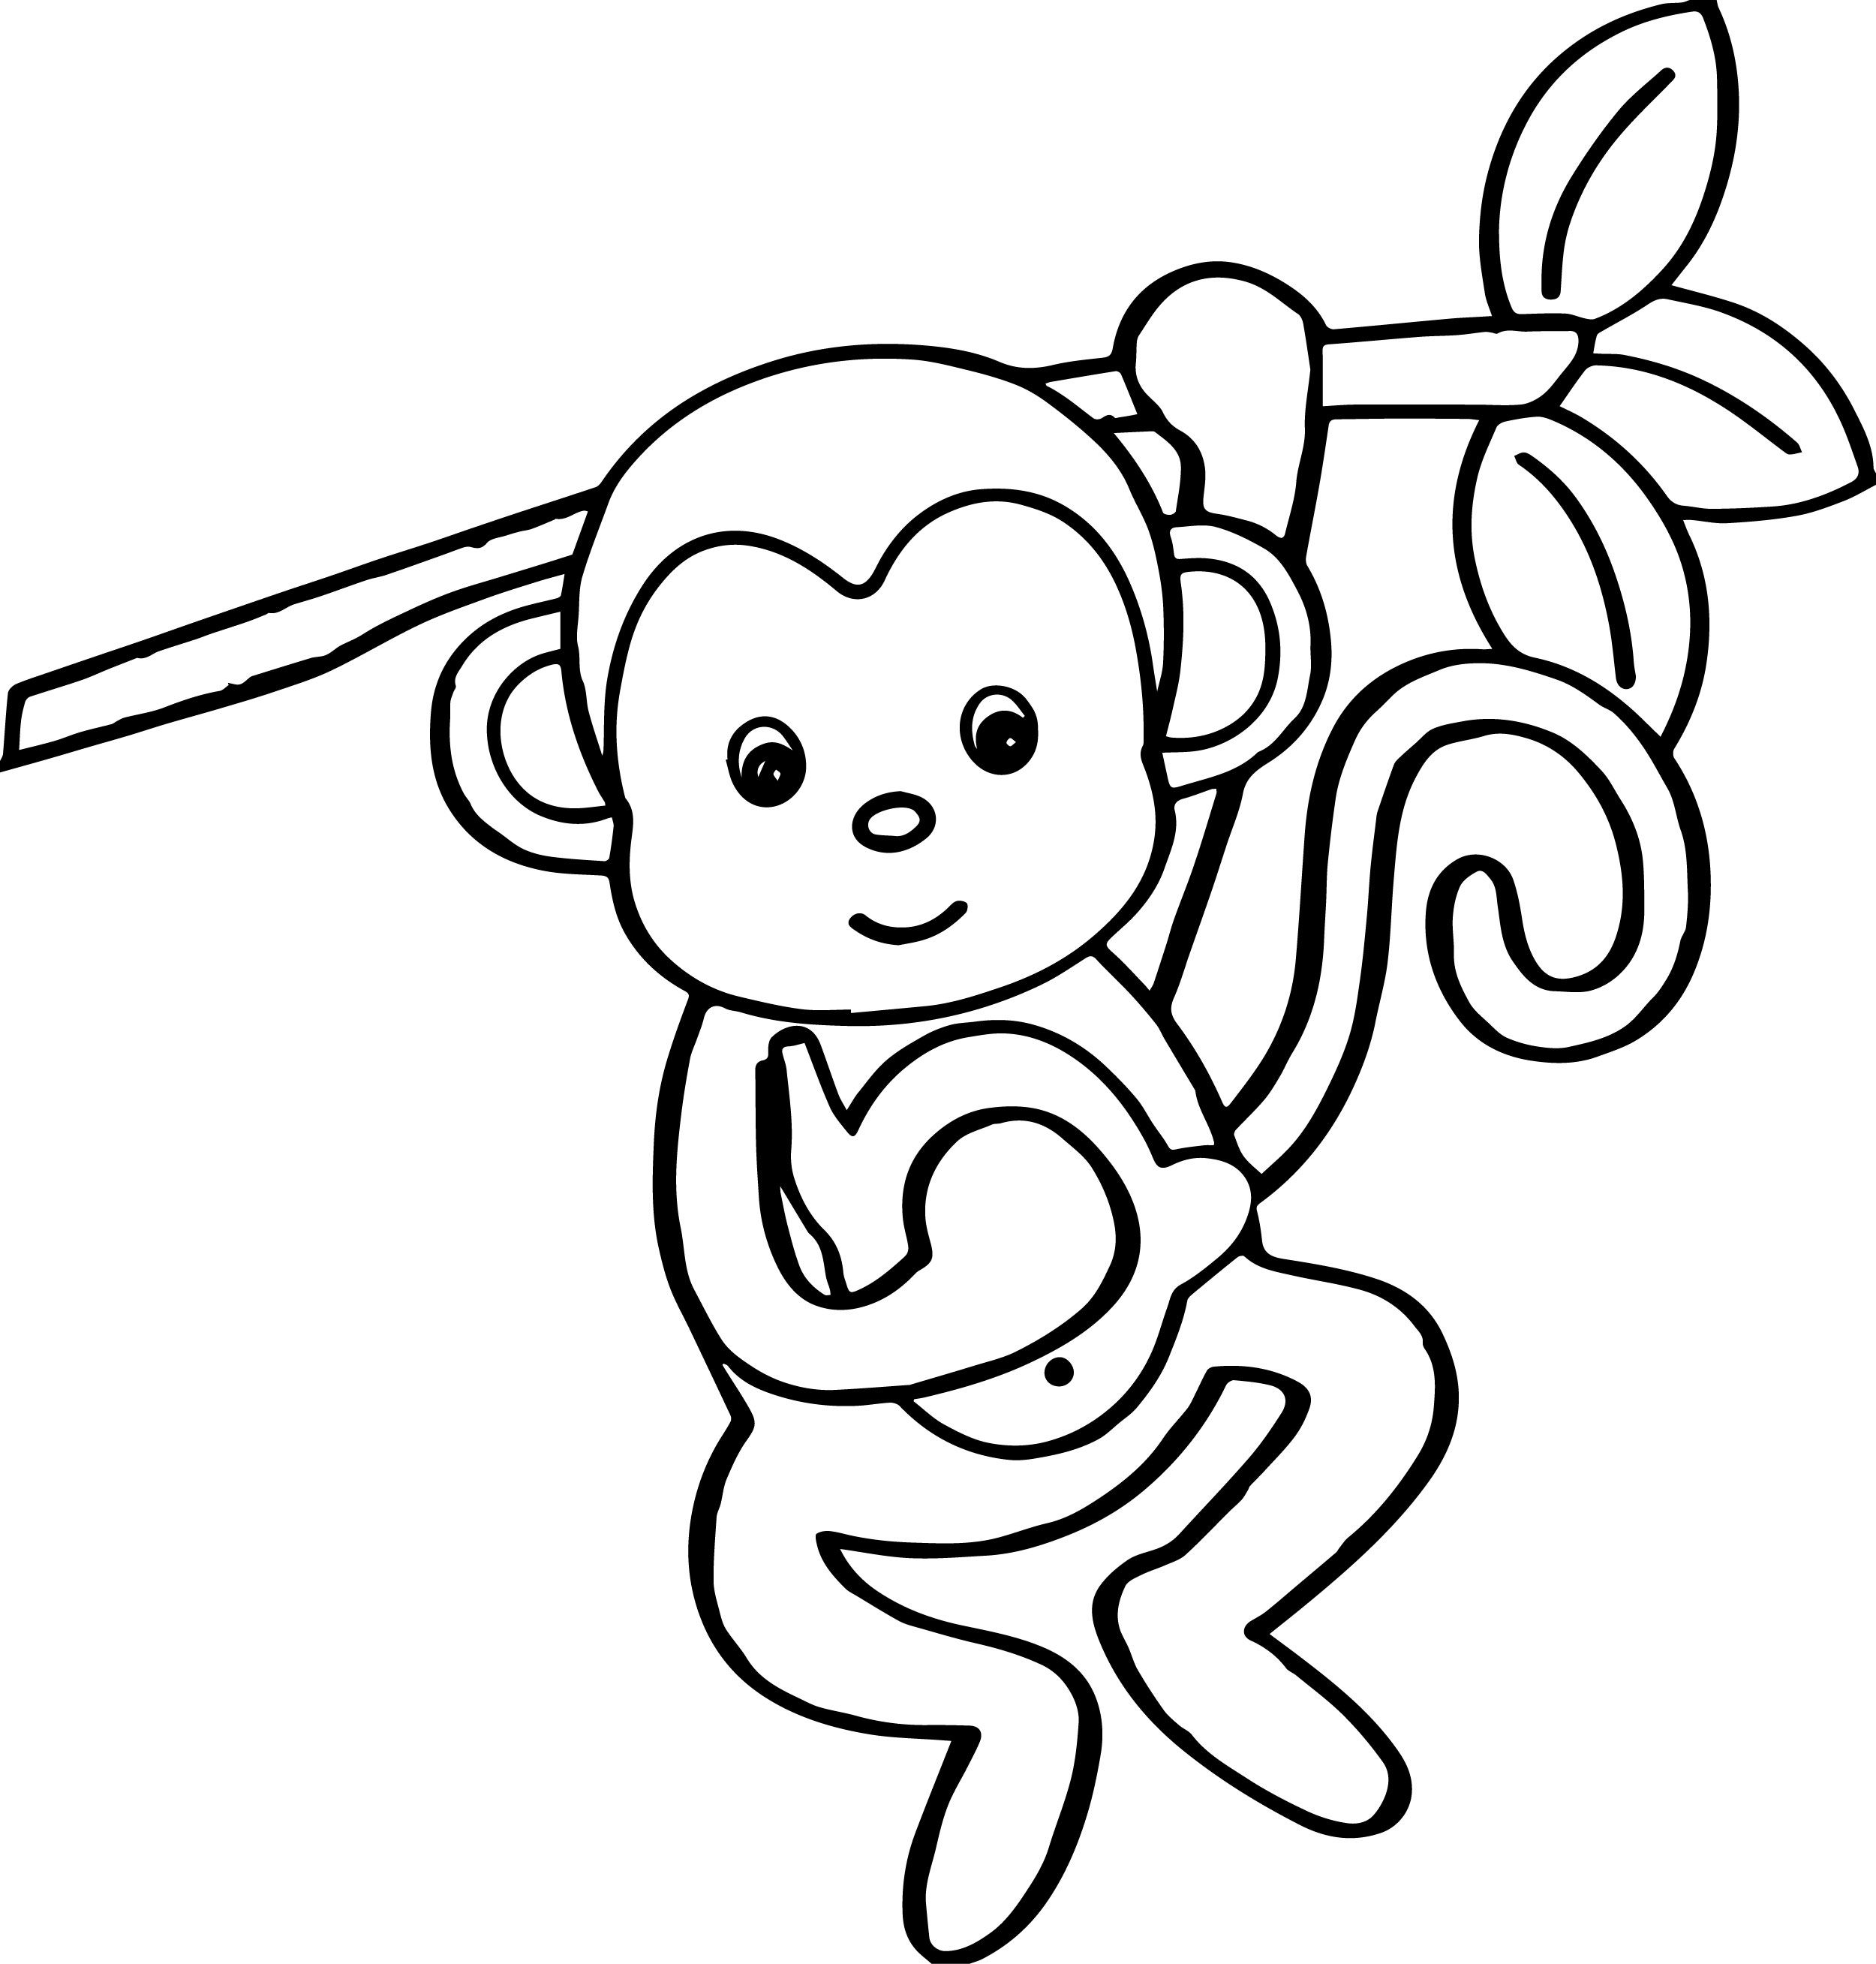 Cool Cartoon Animals Kids Monkey Coloring Page Animal Coloring